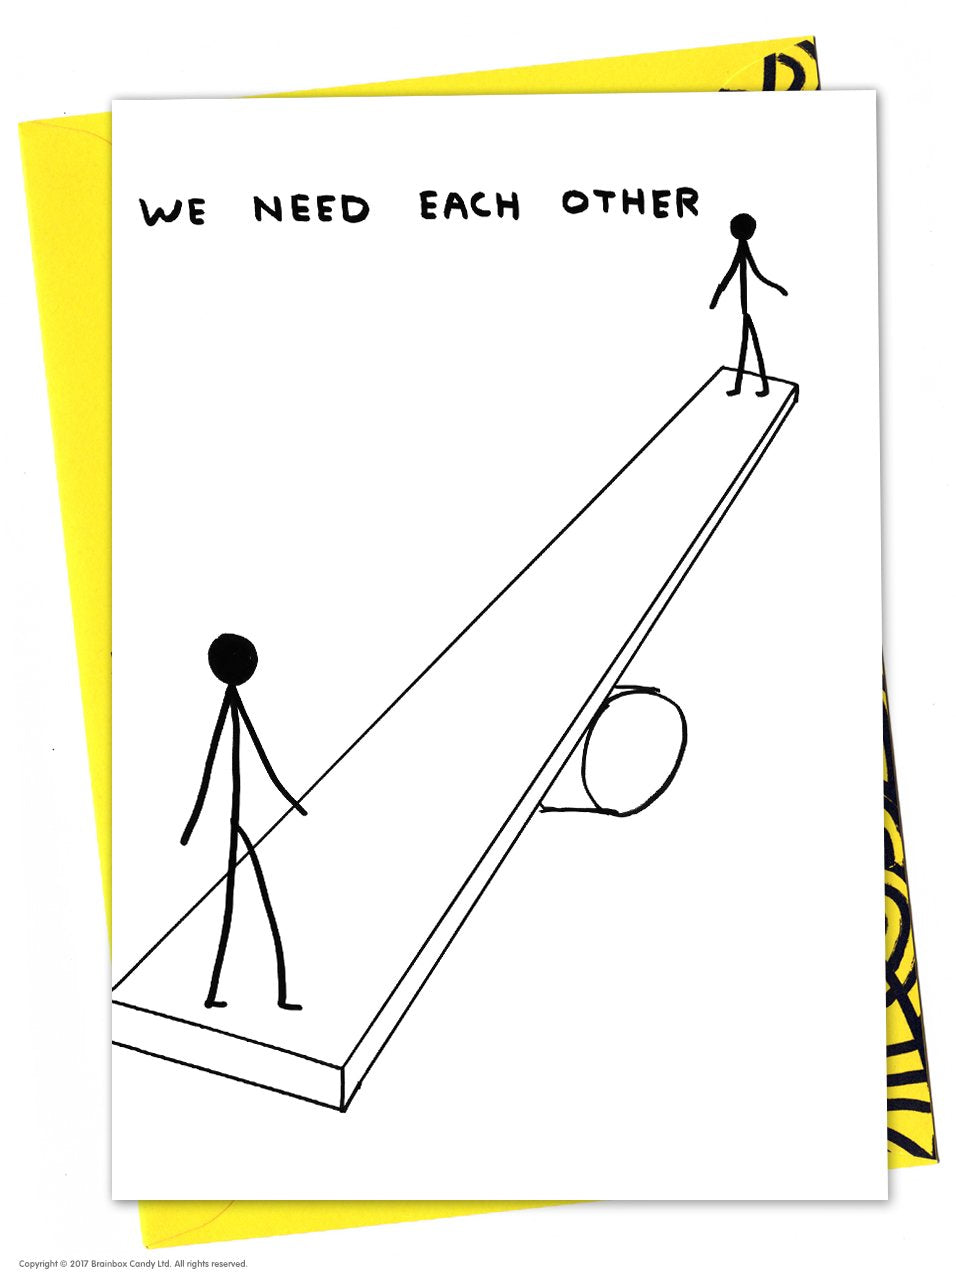 We Need Each Other David Shrigley Card